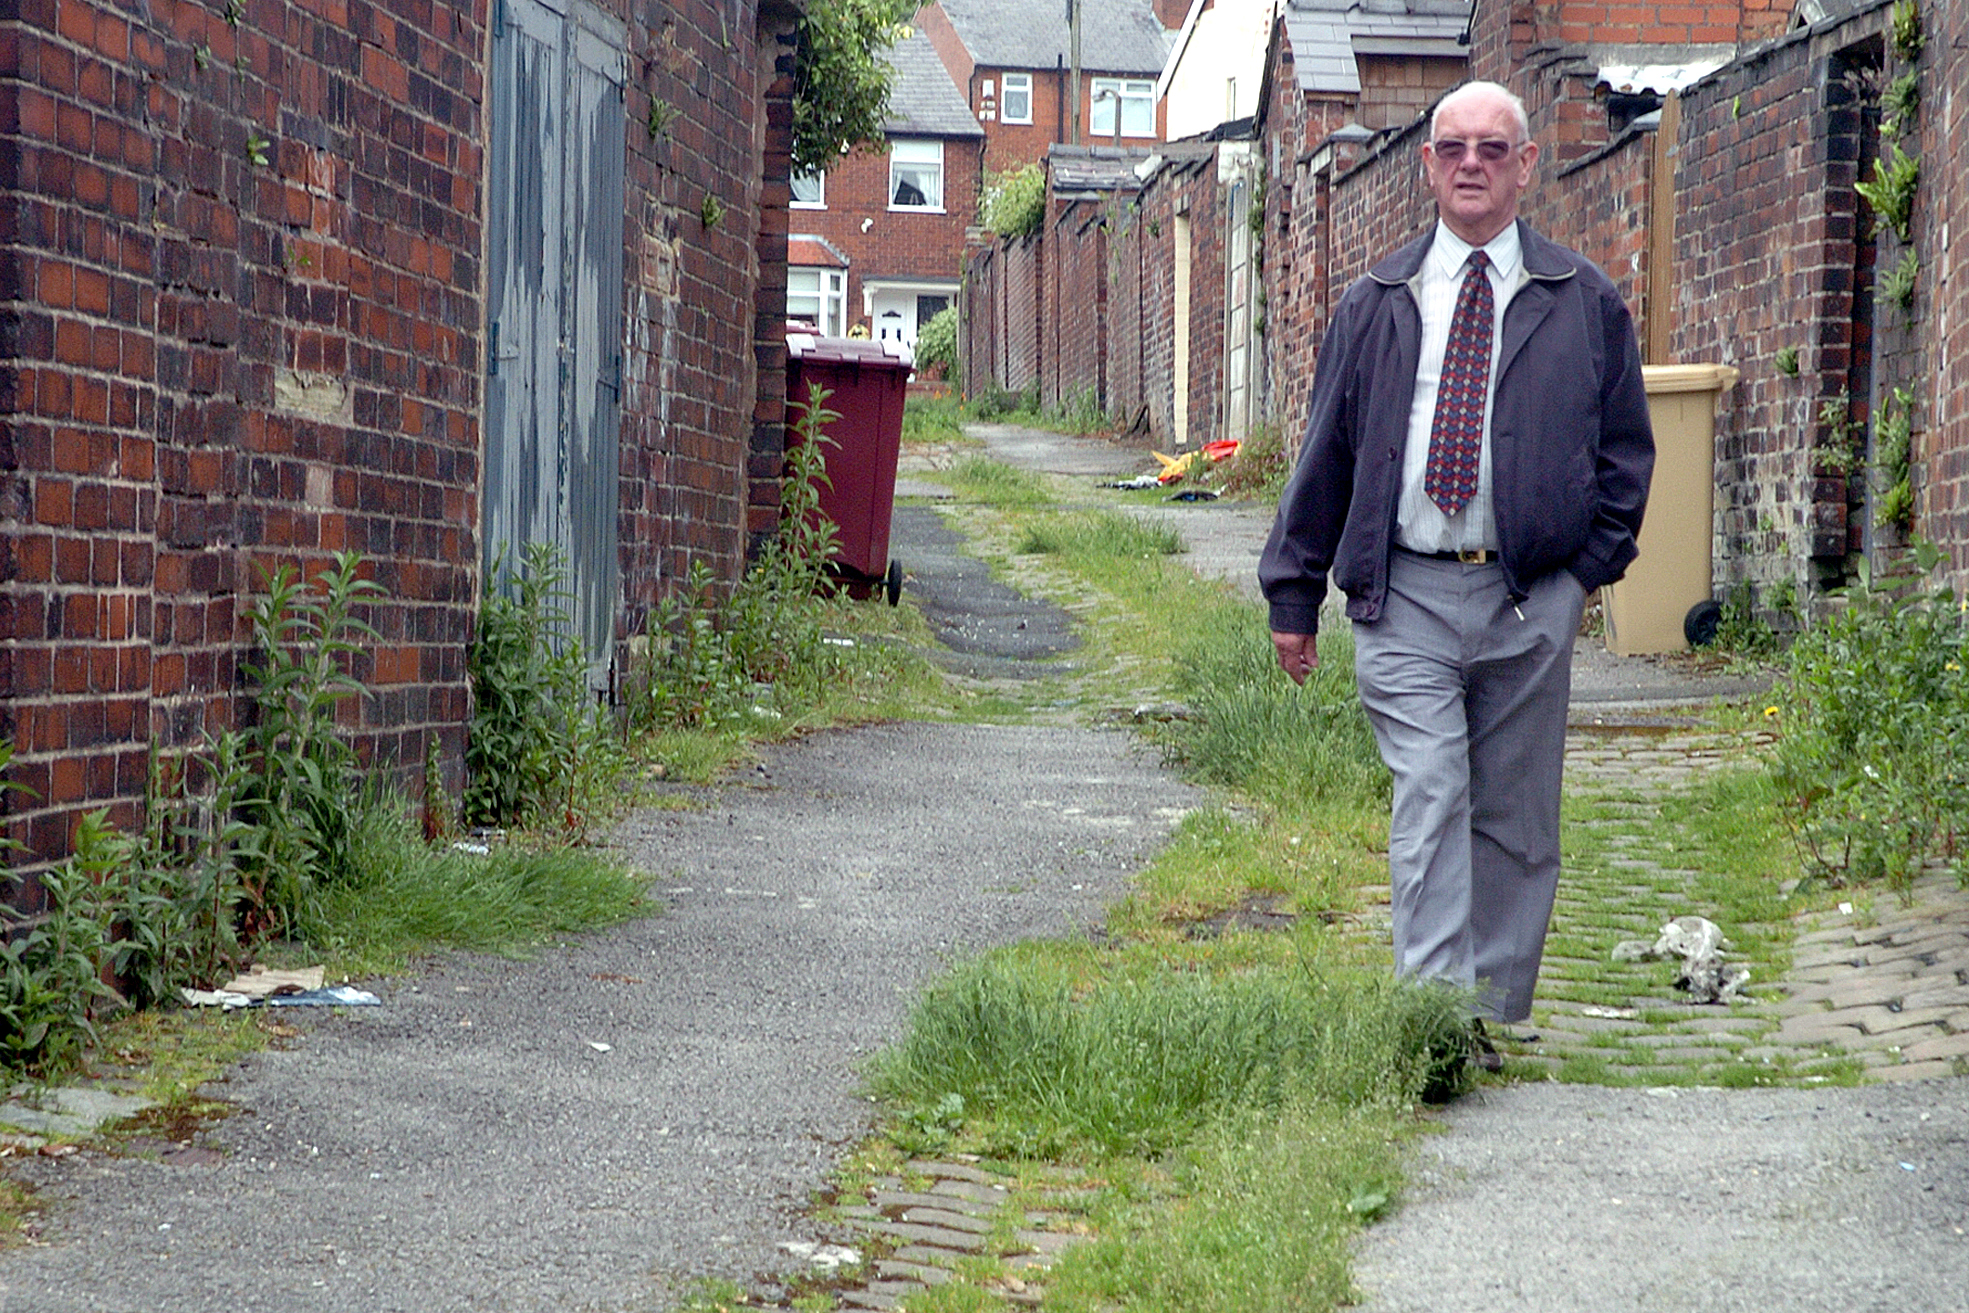 Horwich street compared to something out of 'third world' - but councillor thinks it's 'nice and green'